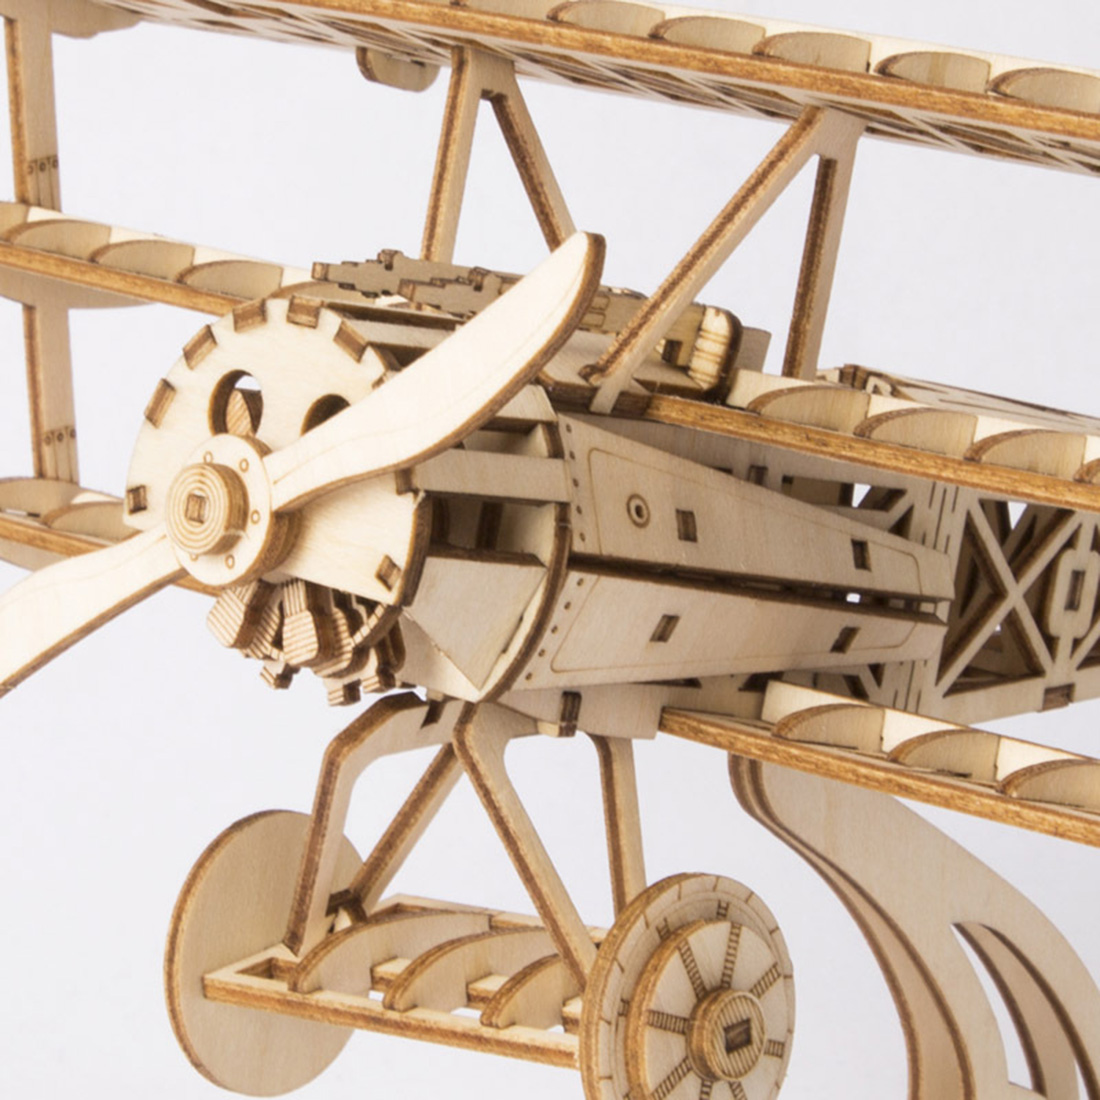 3D Movement Assembled Wooden Painting DIY Laser Cutting Model Steam Stem Toys - Bi-Plane image